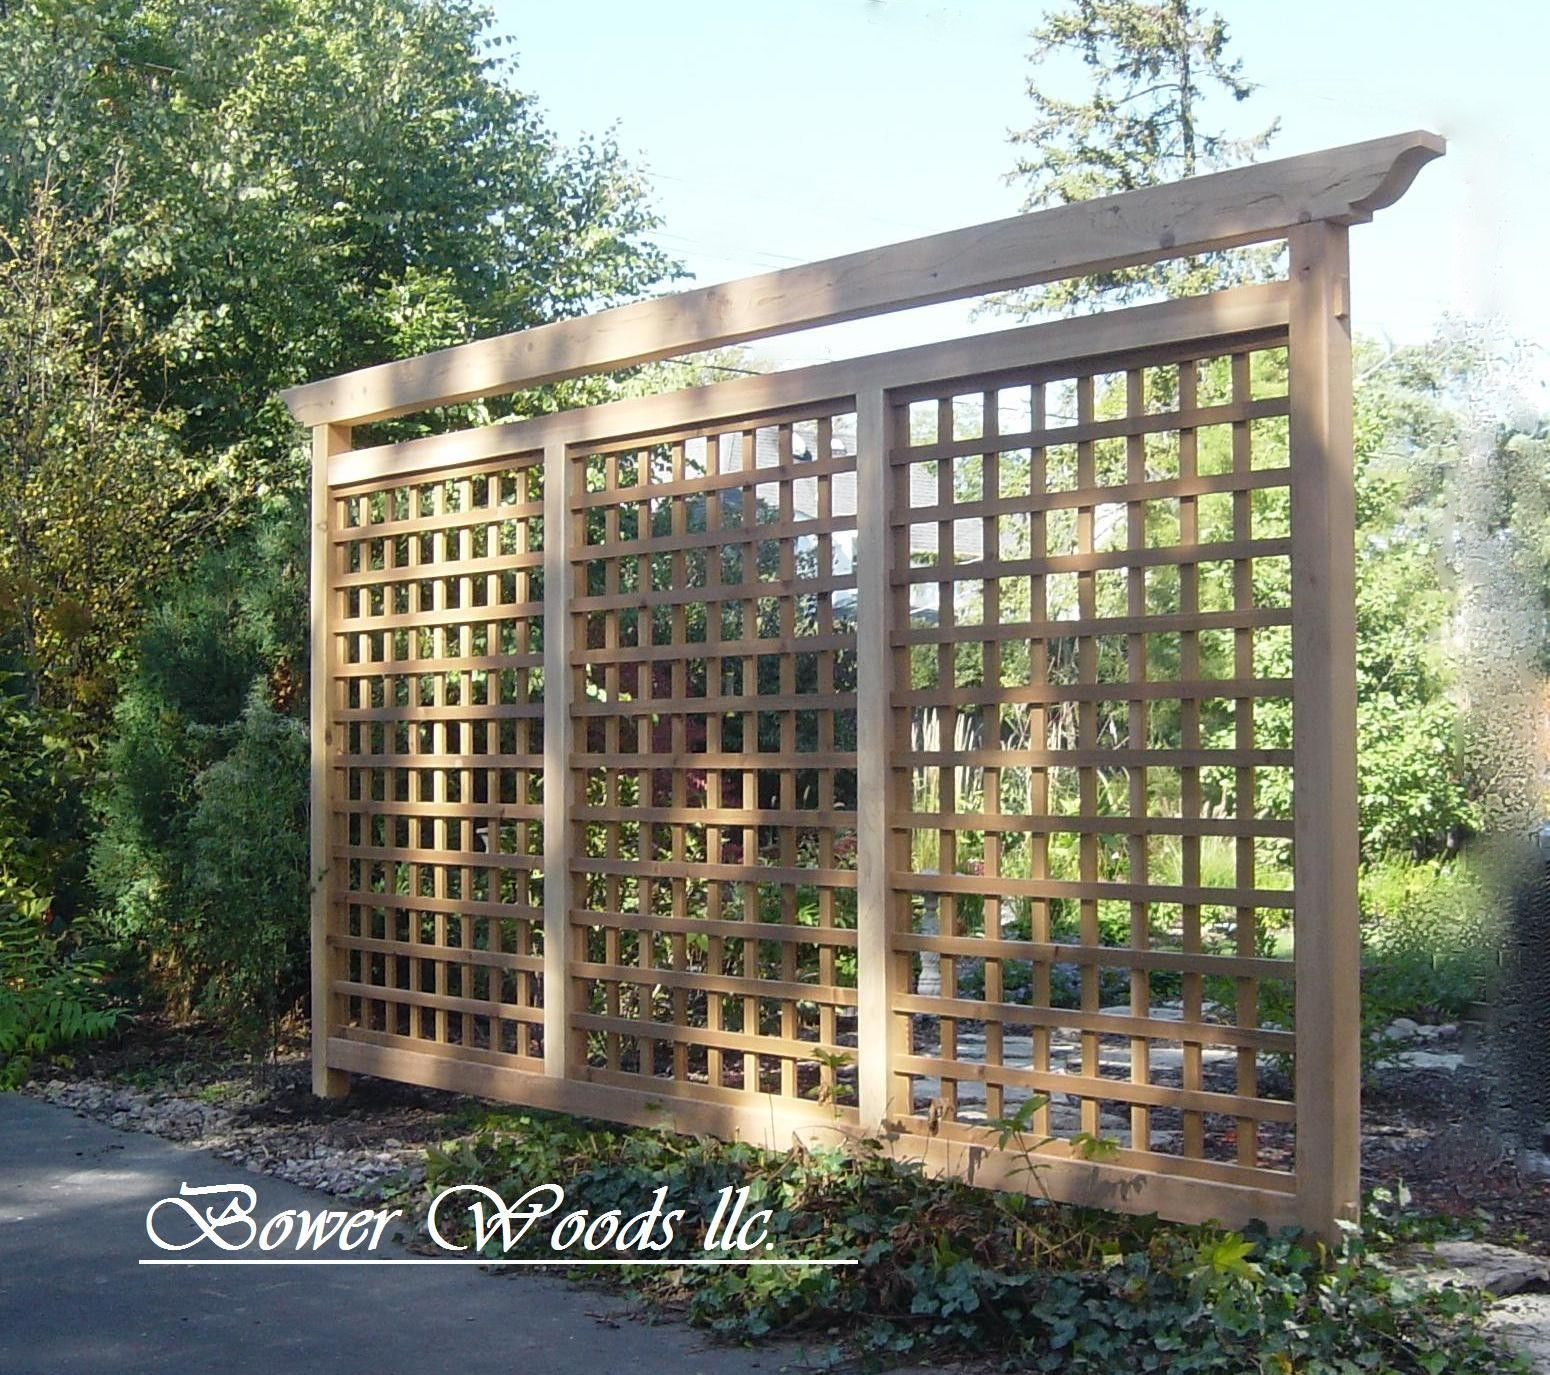 Bower Woods Llc Custom Garden Structures Tuscan Trellis